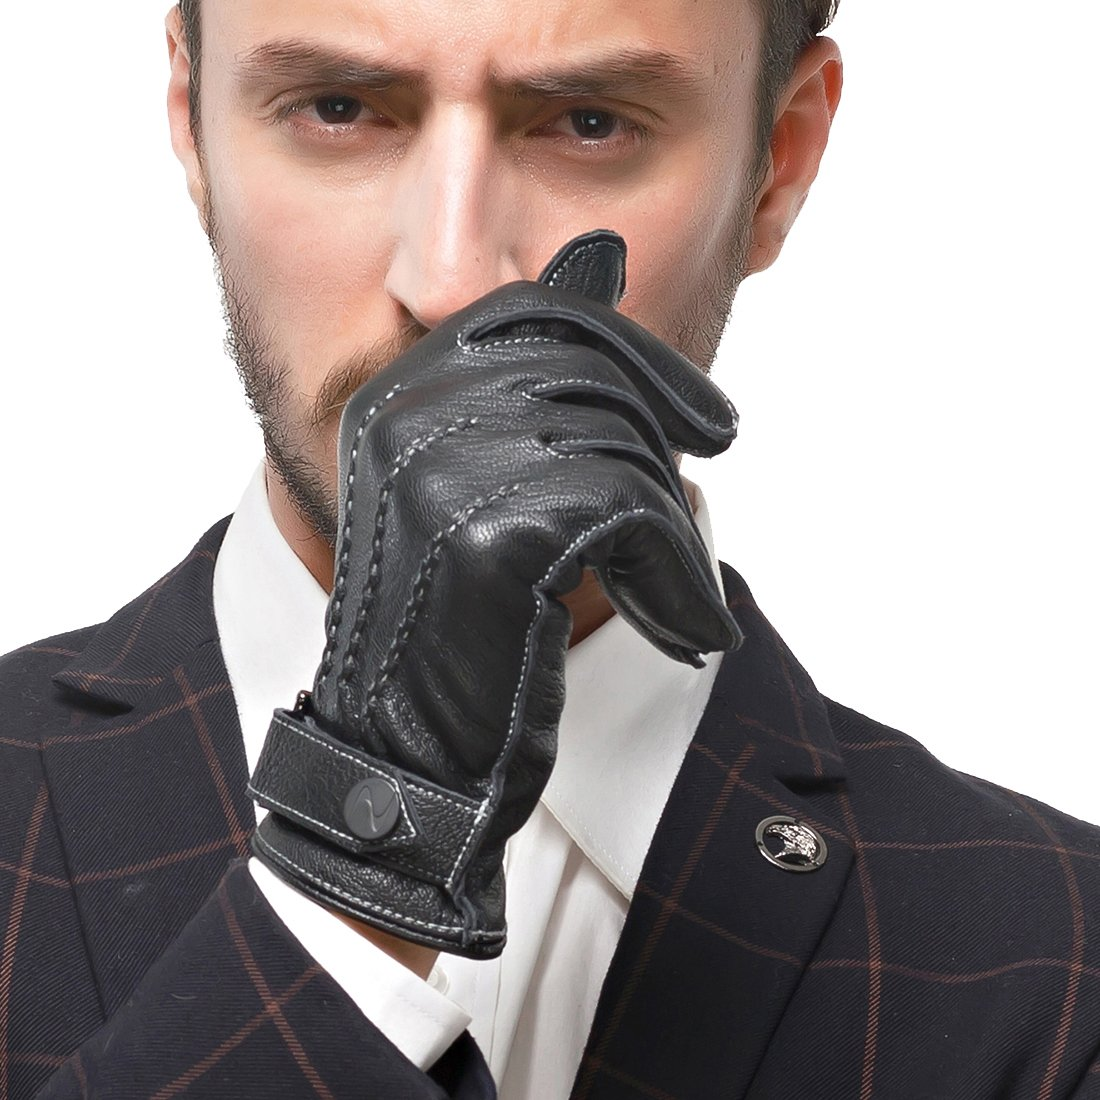 Nappaglo Men's Touchscreen Italian Nappa Leather Gloves Texting Lambskin Warm Gloves with Long Fleece Lining (M (Palm Girth:8''-8.5''), Black (Touchscreen))